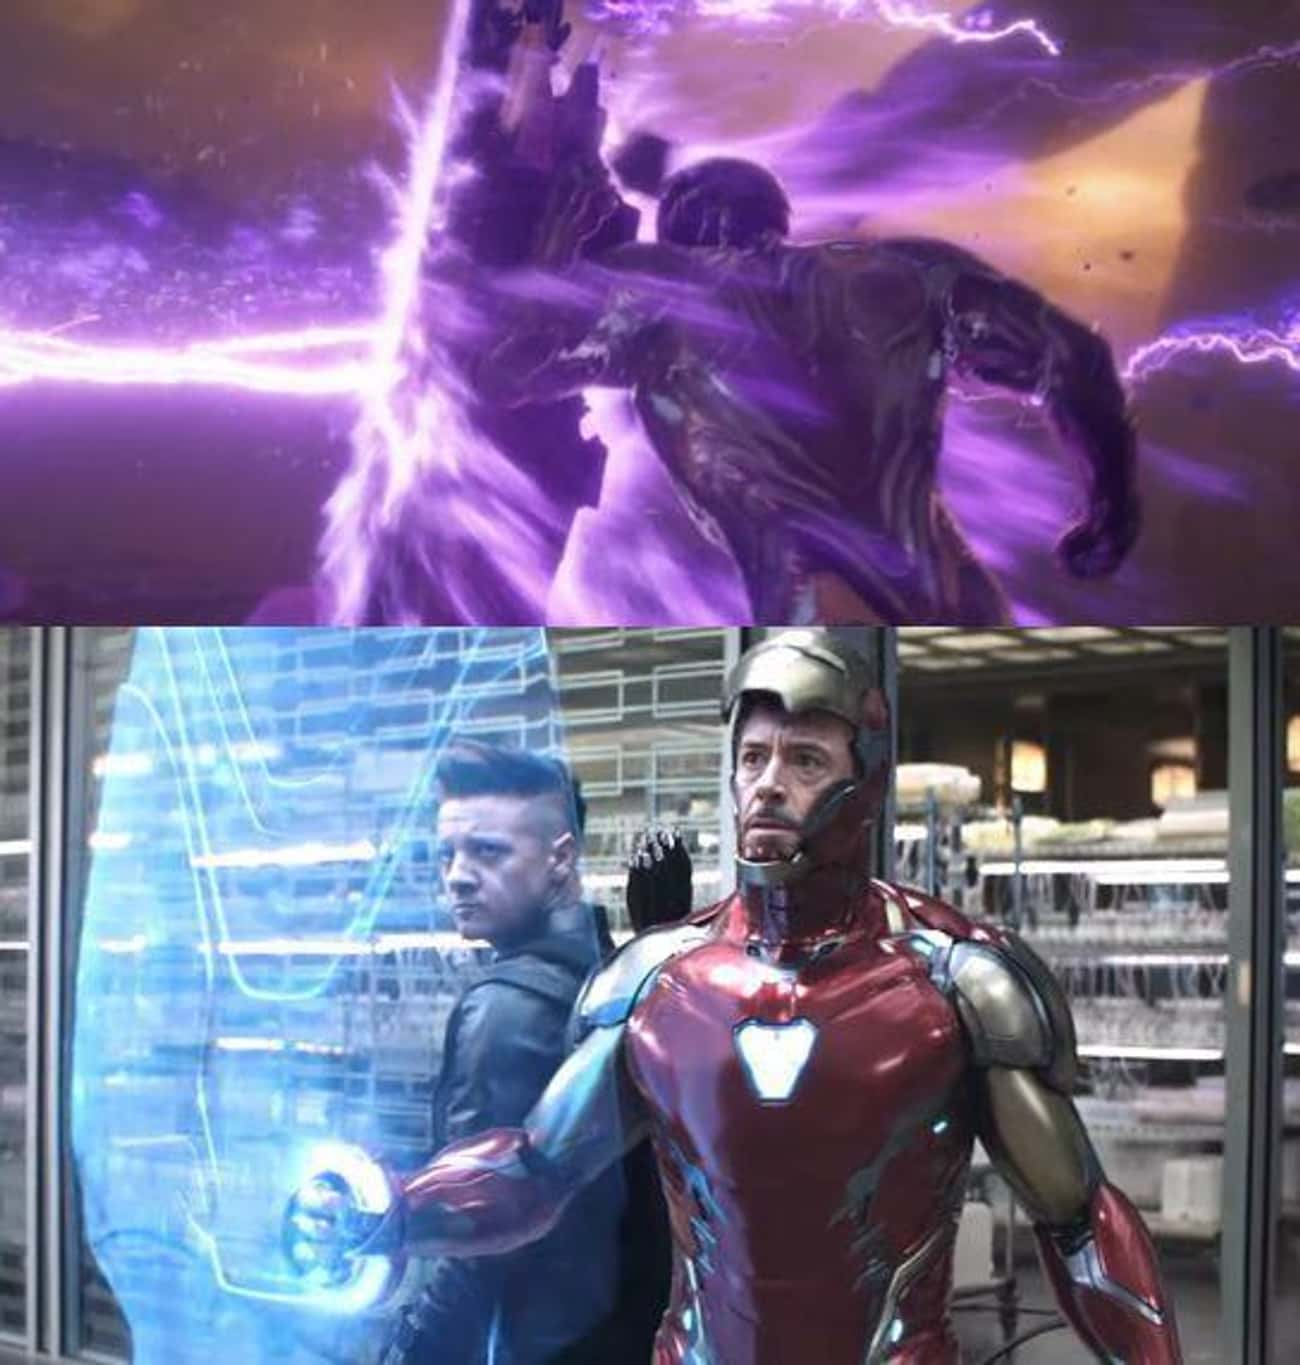 Tony Upgraded To WakandanHolo is listed (or ranked) 3 on the list Small Details From 'Avengers: Endgame' That Enhance Our 100th Viewing